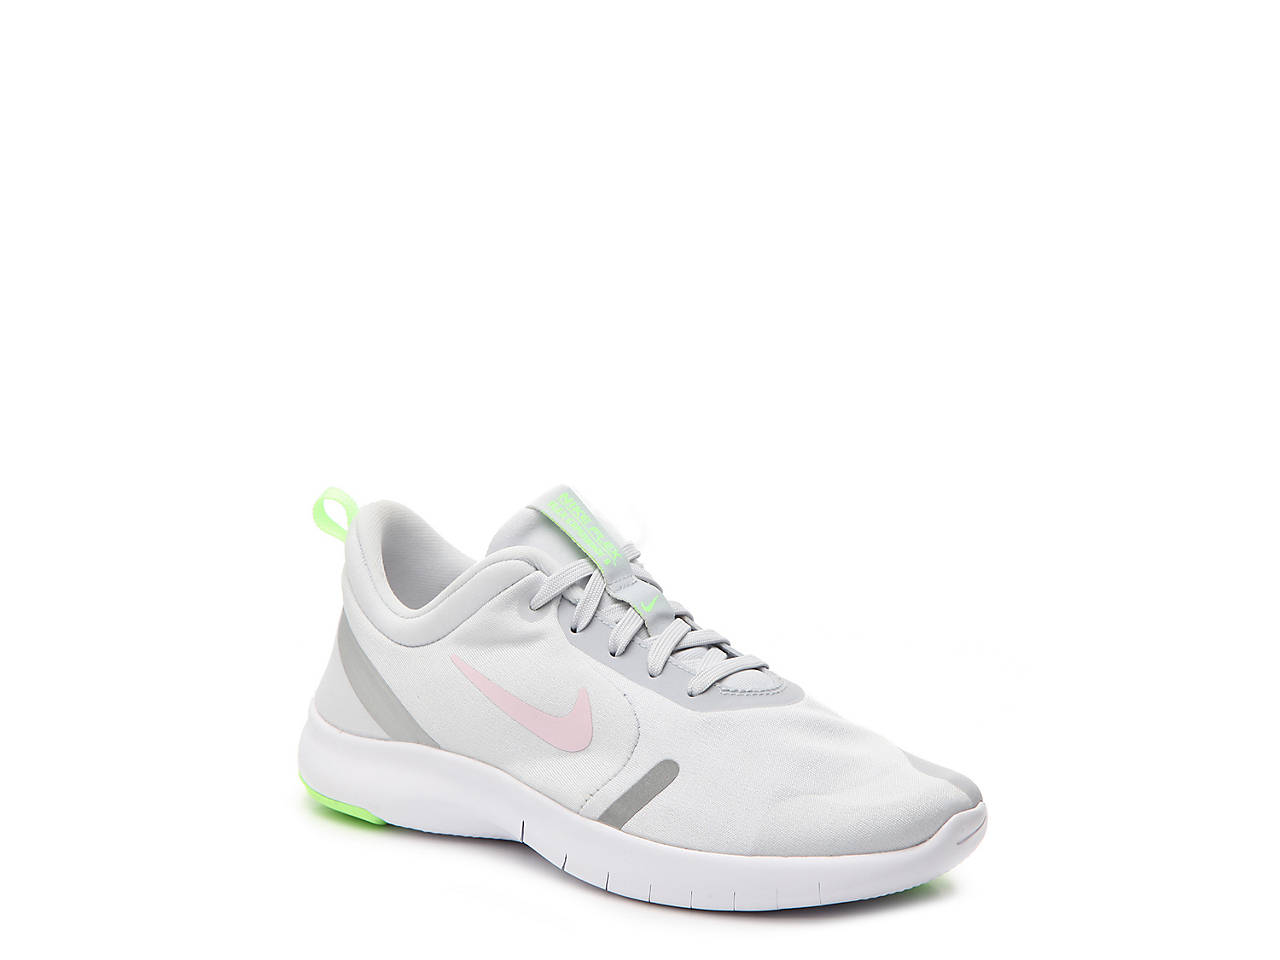 Nike Flex Experience RN 8 Youth Running Shoe Kids Shoes  2ffdf7b16a